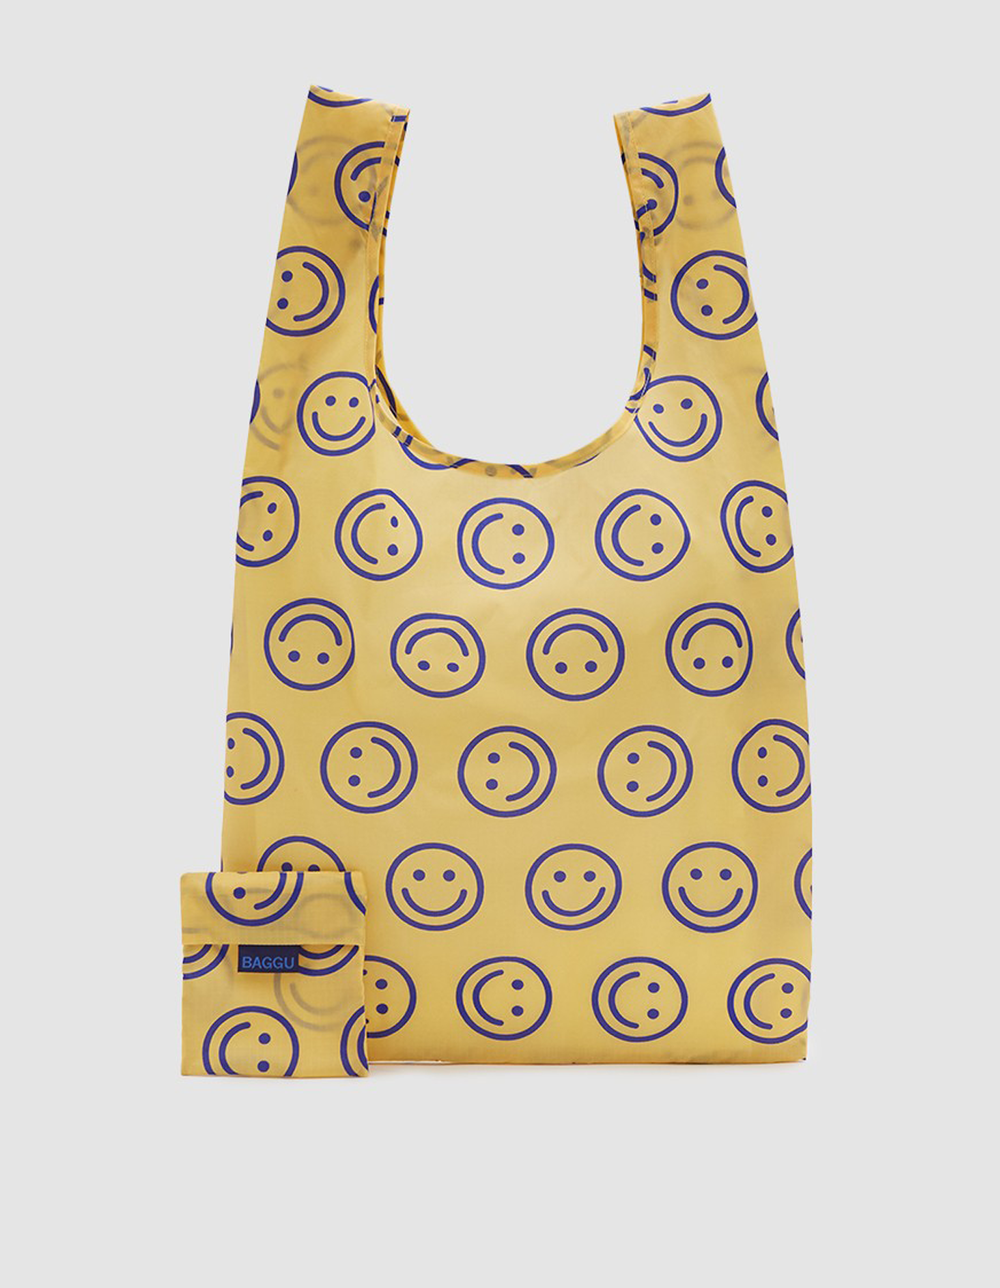 smiley face baggu bag | @themissprints